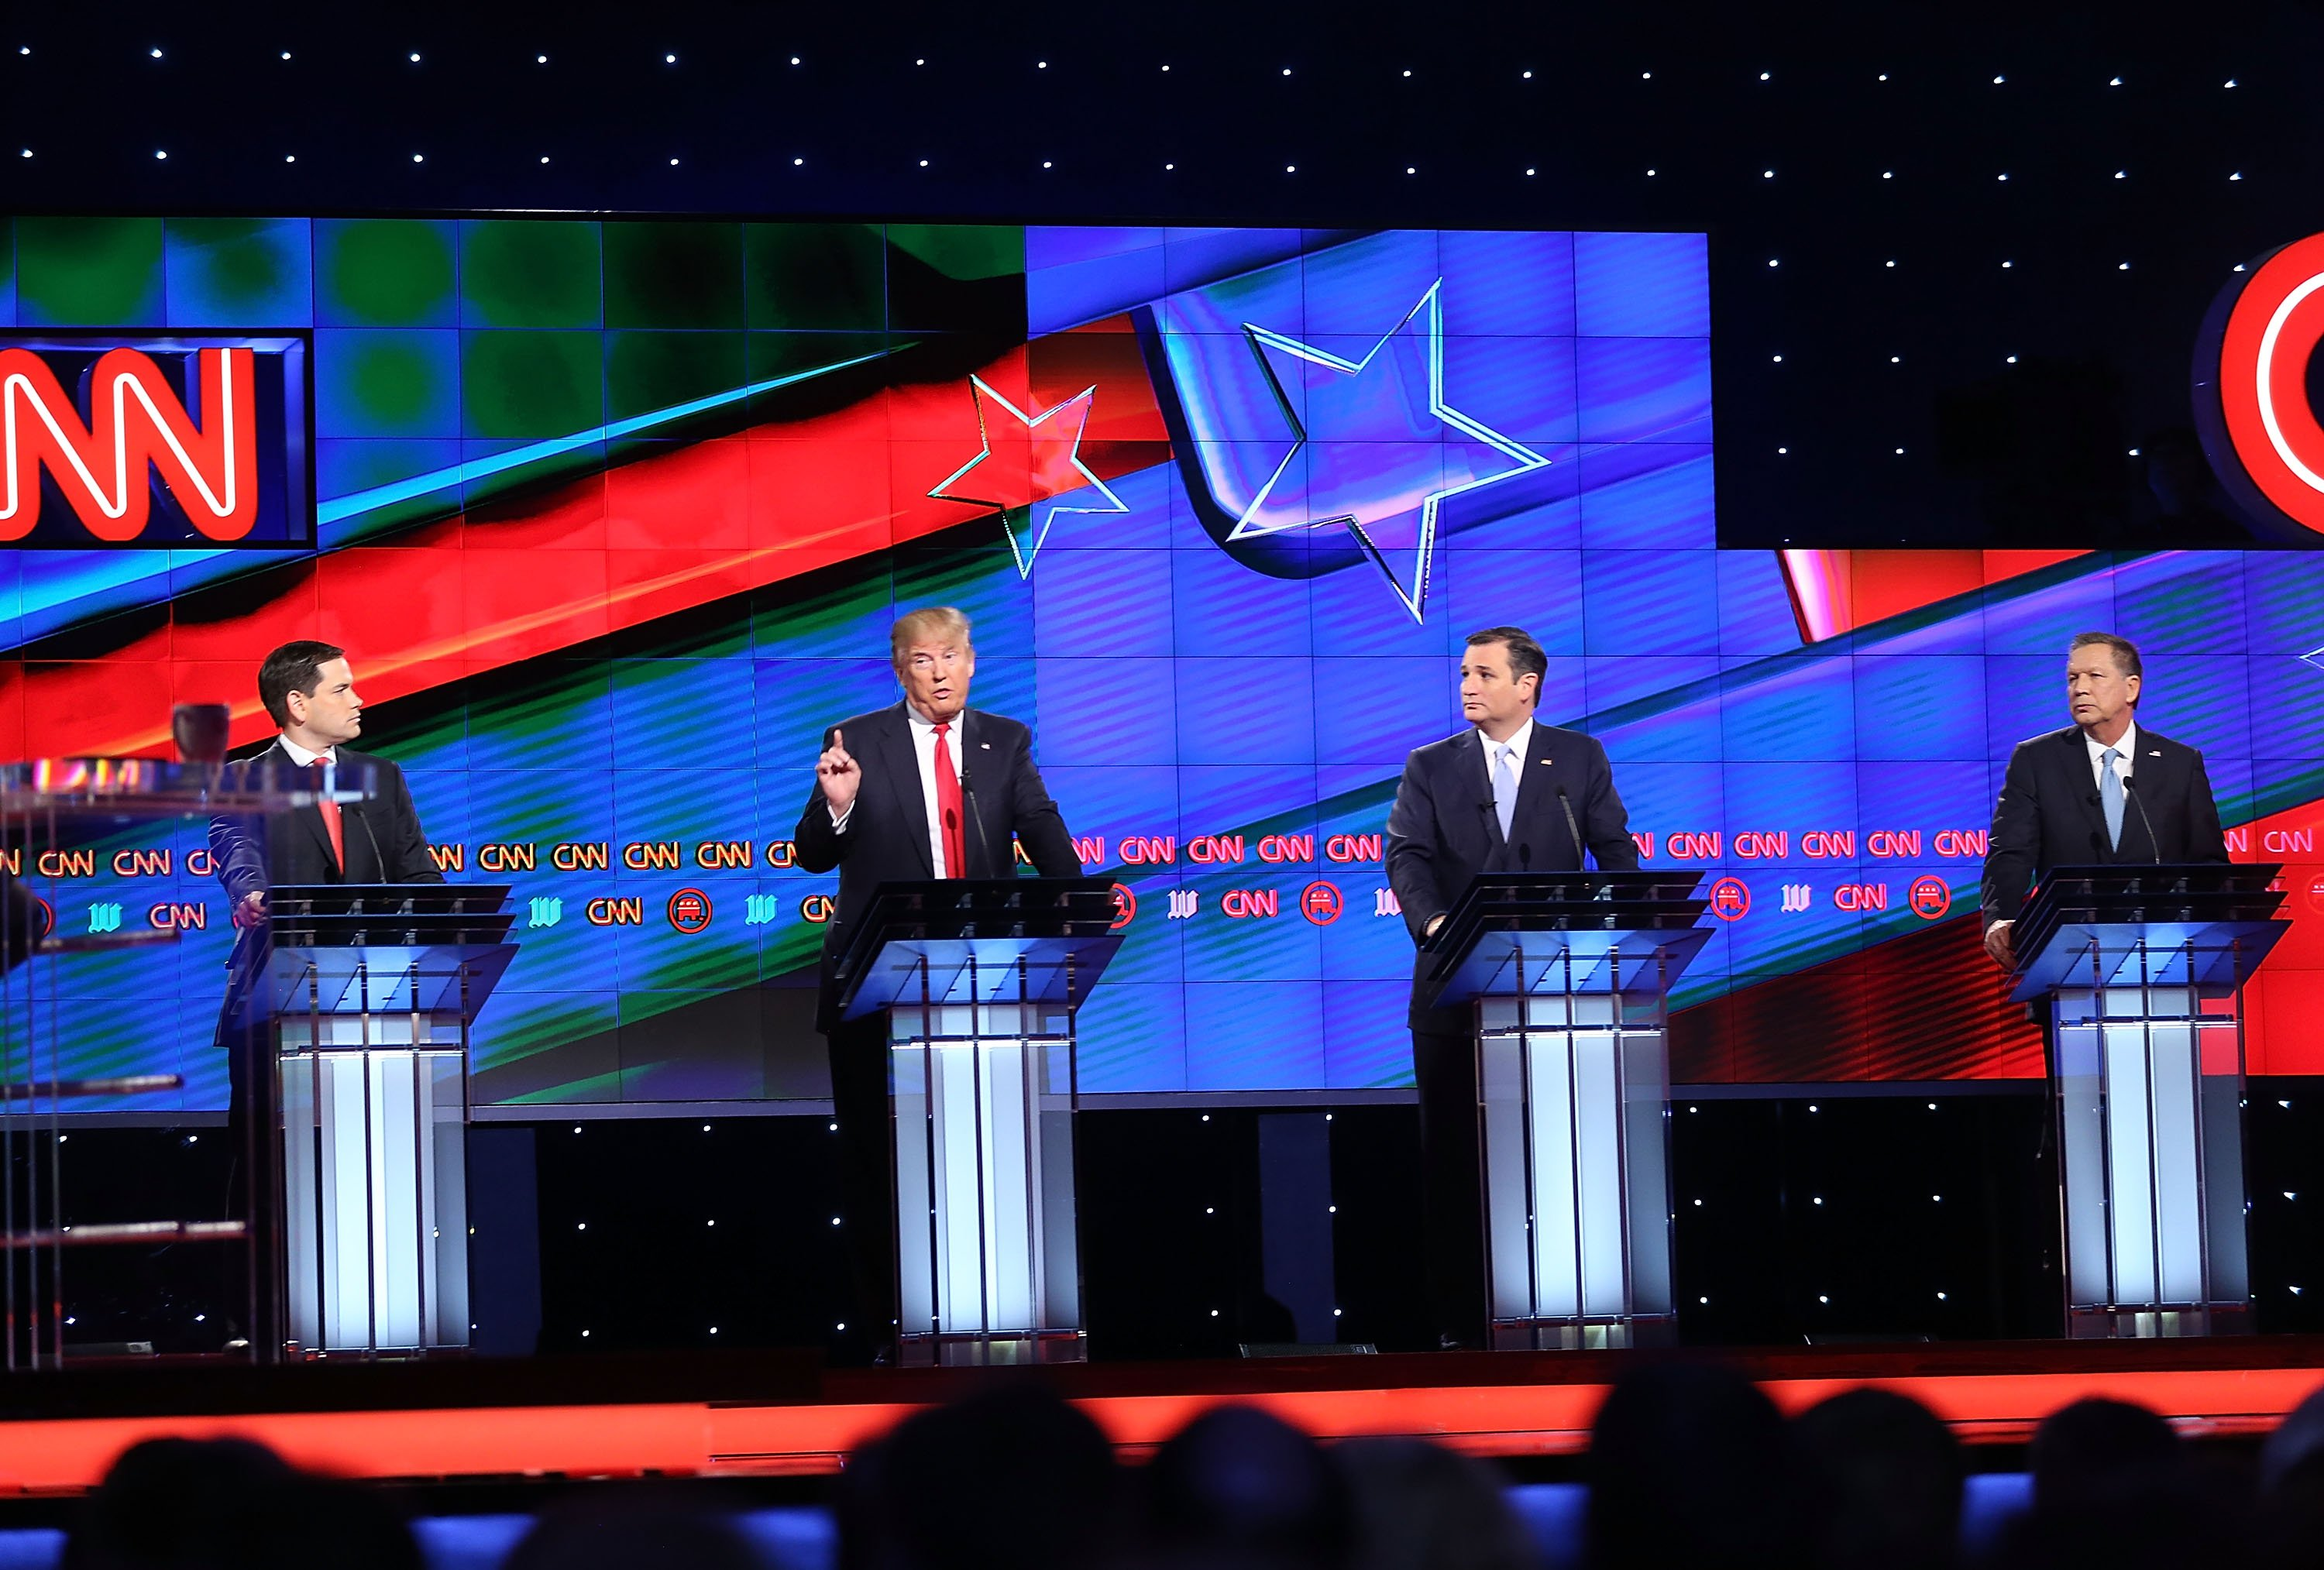 Republican presidential candidates, Sen. Marco Rubio, Donald Trump, Sen. Ted Cruz, and Ohio Gov. John Kasich debate during the CNN, Salem Media Group, The Washington Times Republican Presidential Primary Debate on the campus of the University of Miami on March 10, 2016 in Coral Gables, Fl.